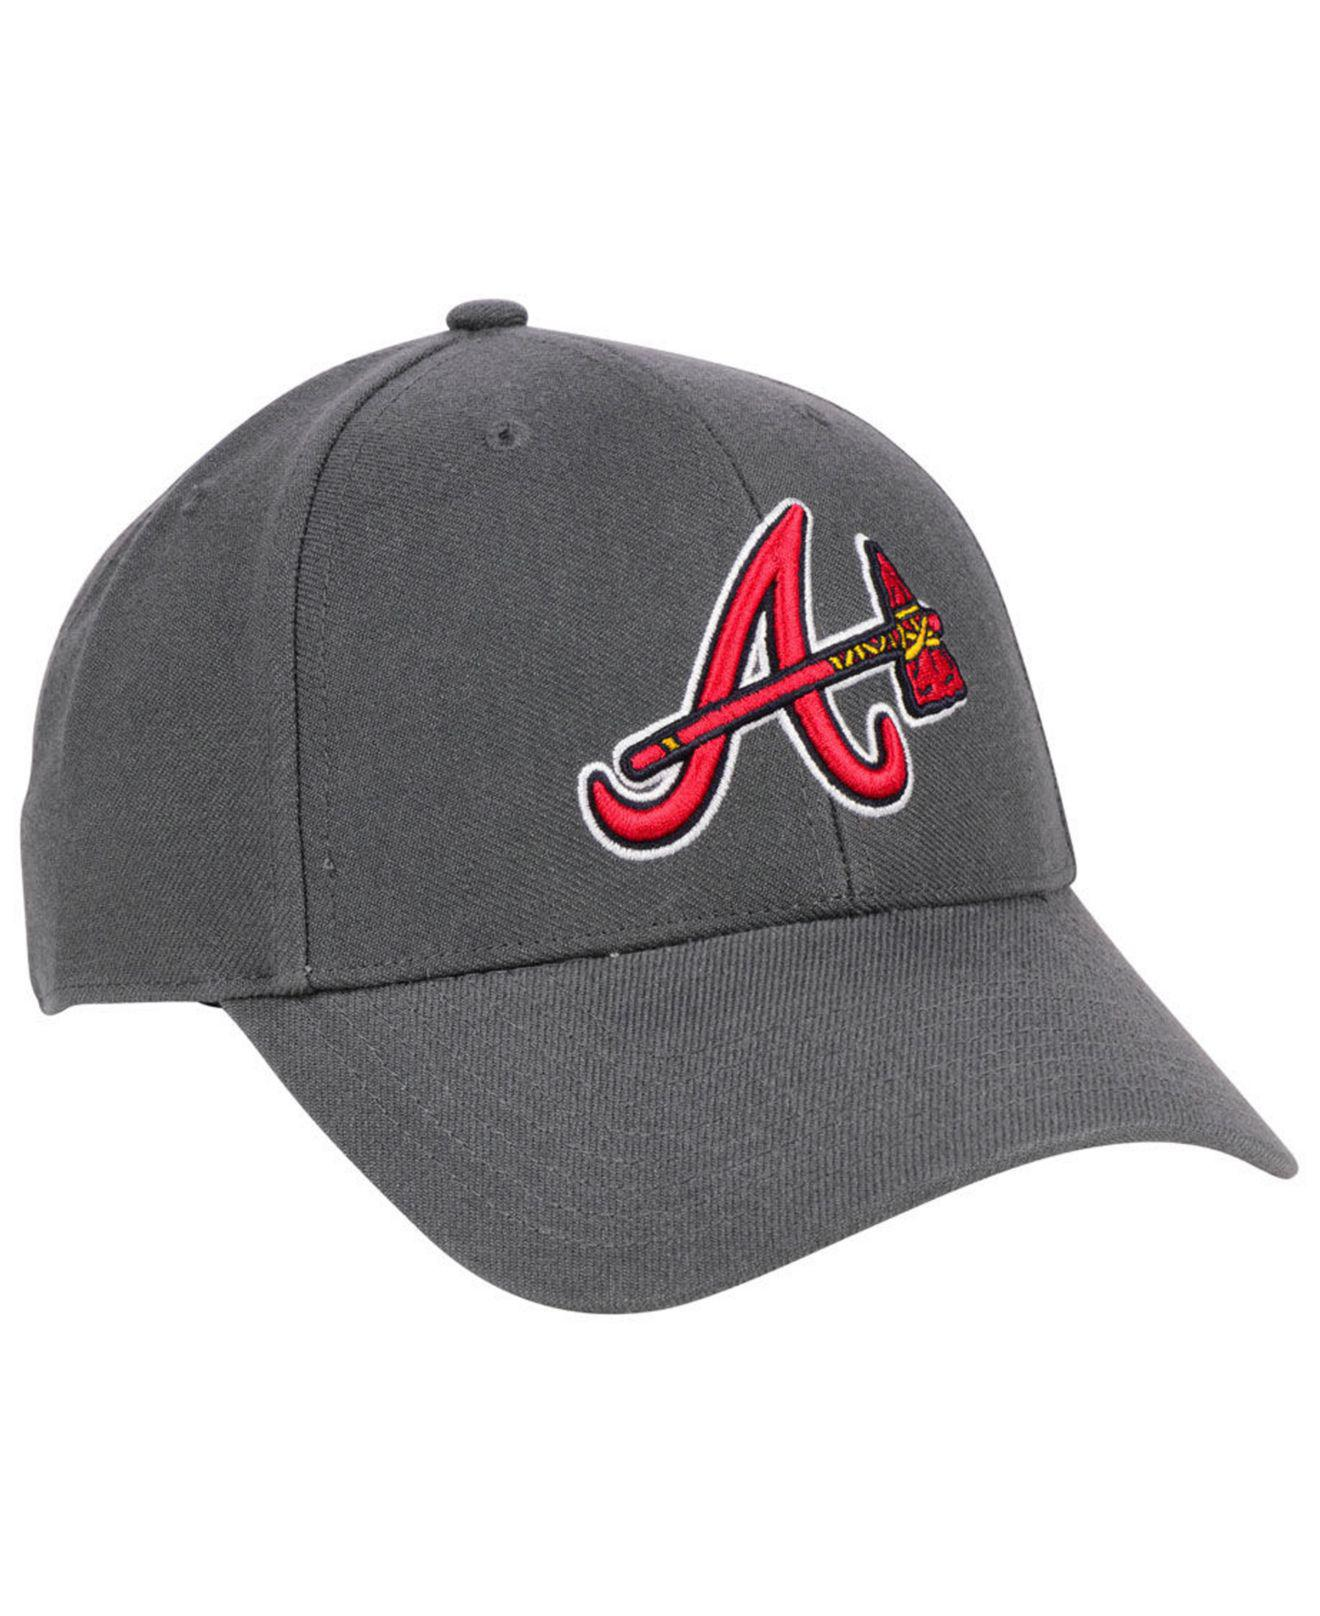 new arrival fa3ce 9b810 ... discount lyst 47 brand atlanta braves charcoal mvp cap in gray for men  e88fd f61a0